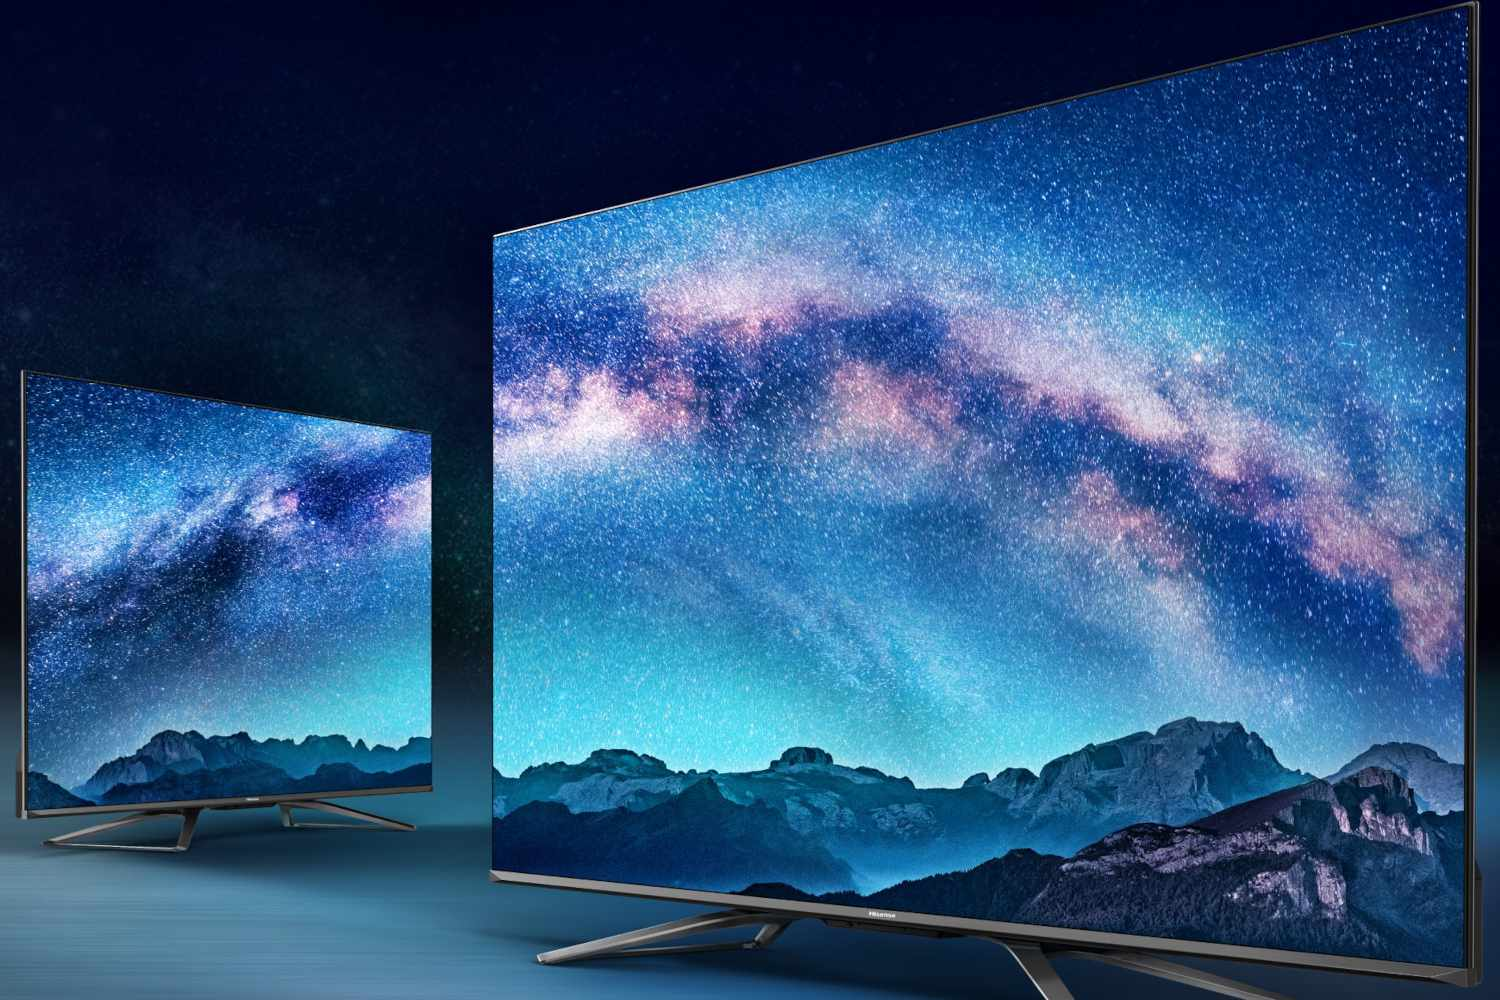 Two Hisense televisions in a promotional image